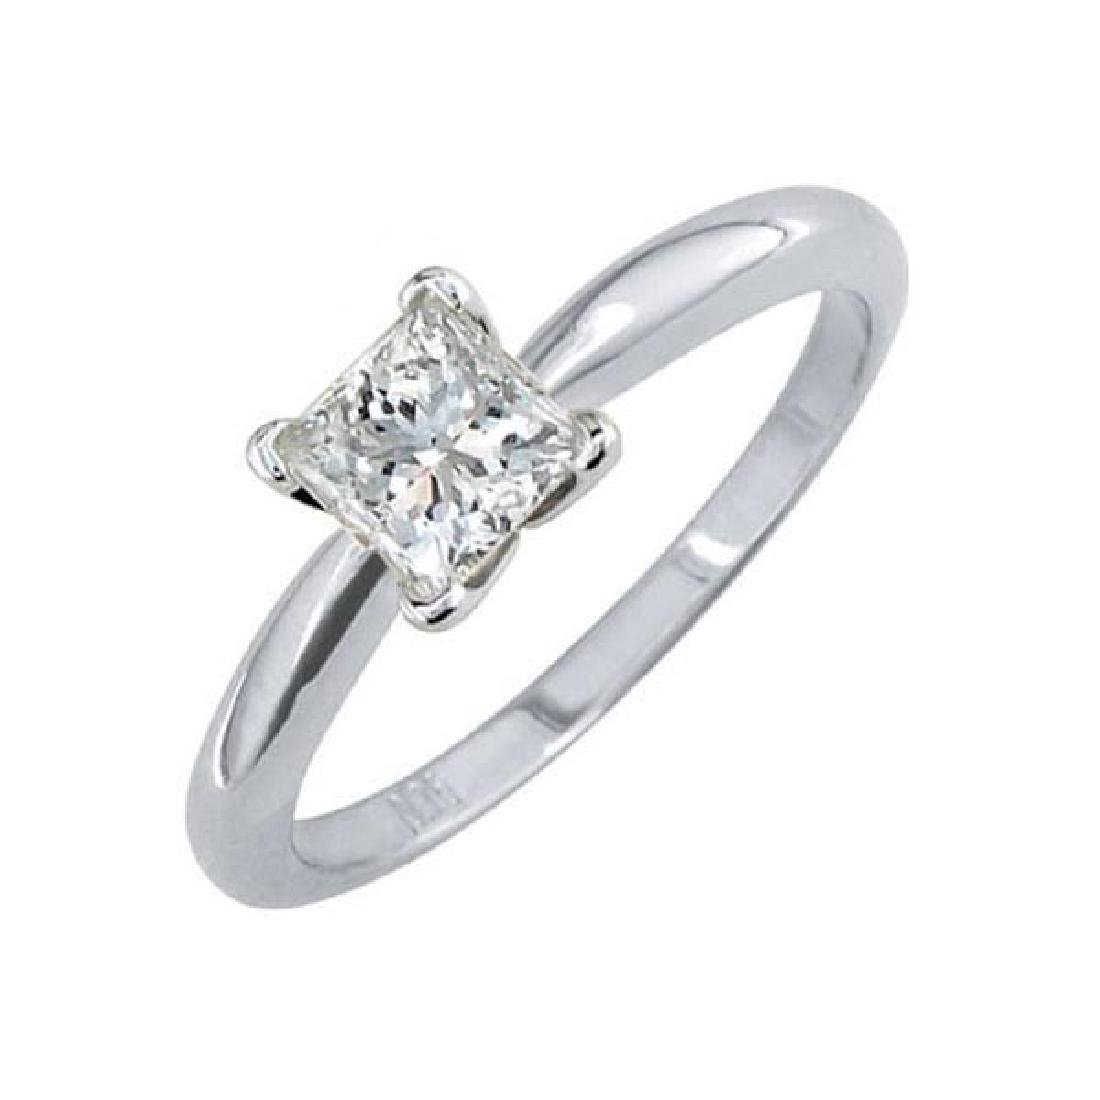 Certified 0.57 CTW Princess Diamond Solitaire 14k Ring